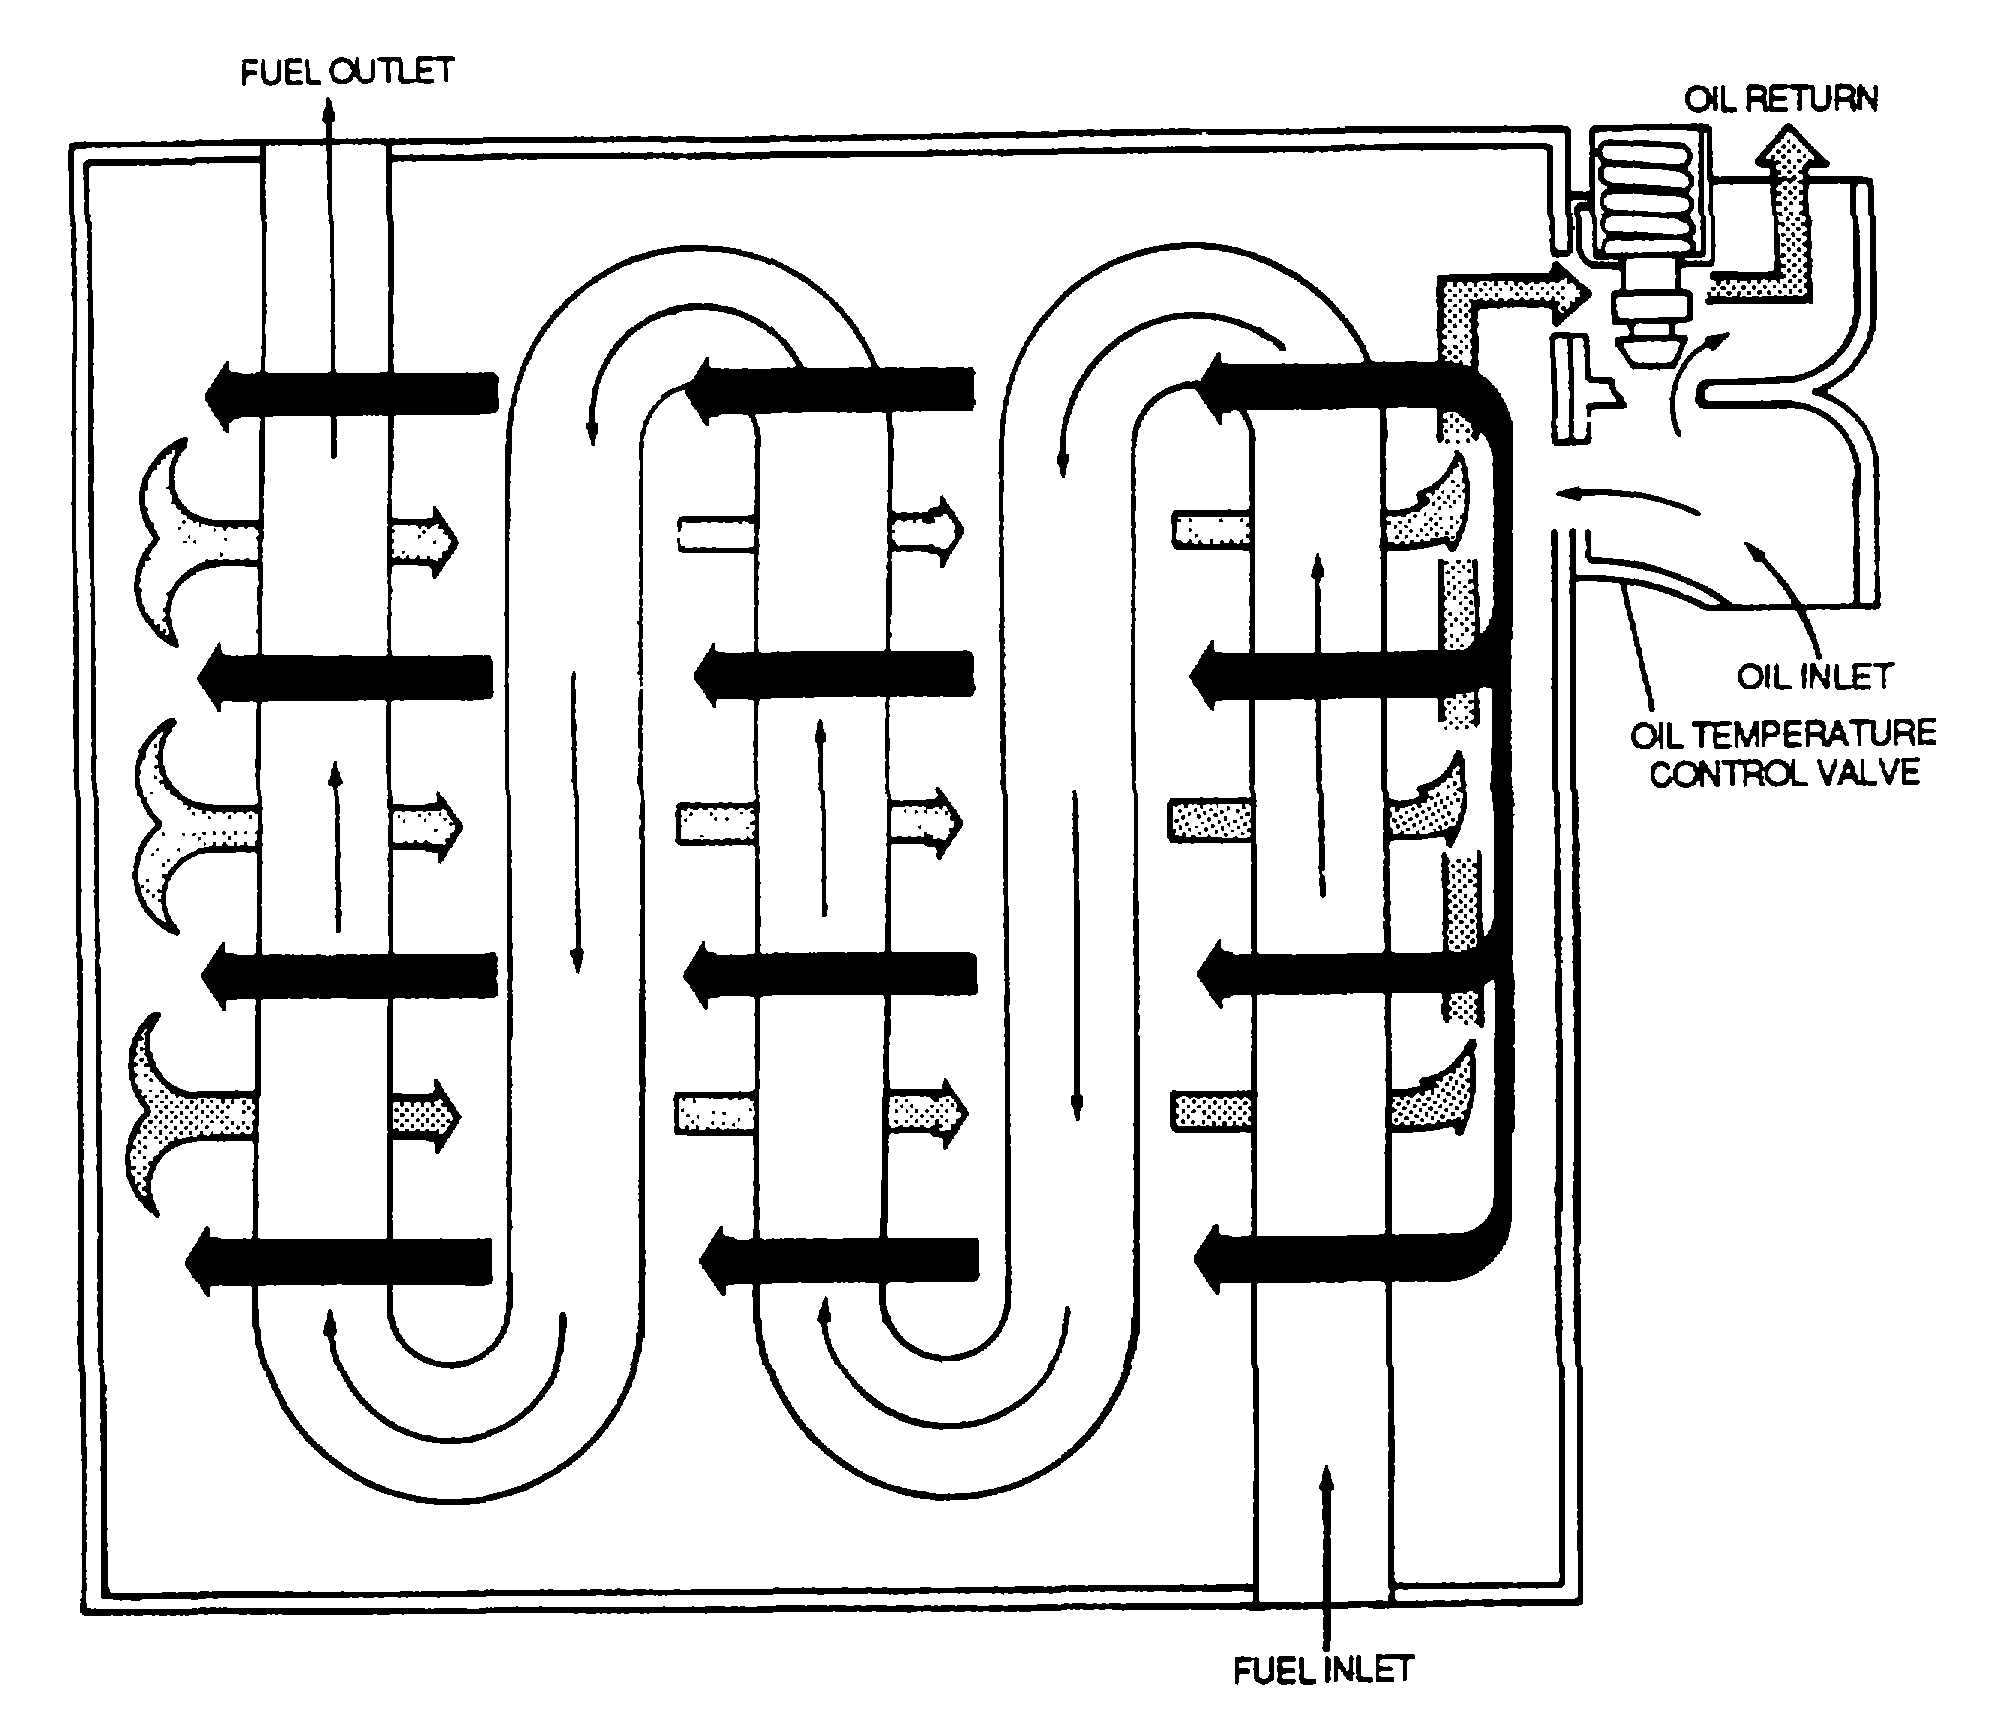 Figure 3-11. Turbine Engine Fuel/Oil Heat Exchanger Cooler